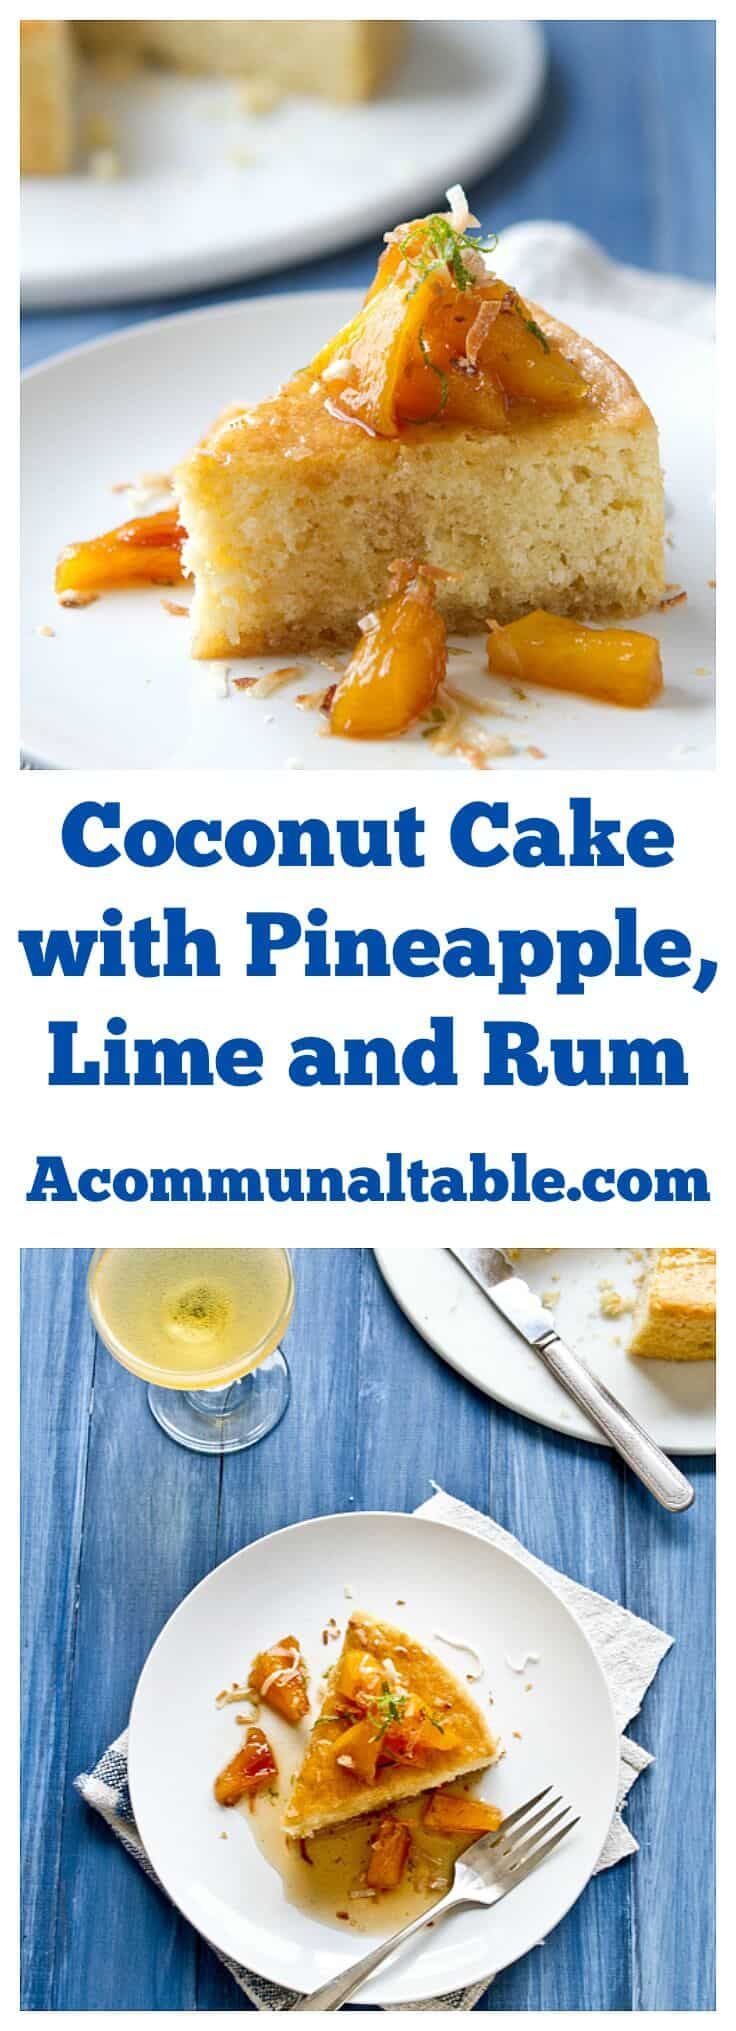 This easy, one pan Coconut Cake with Caramelized Pineapple, Rum and Lime Syrup ups it's tropical flavor cred with fresh coconut and caramelized pineapple.